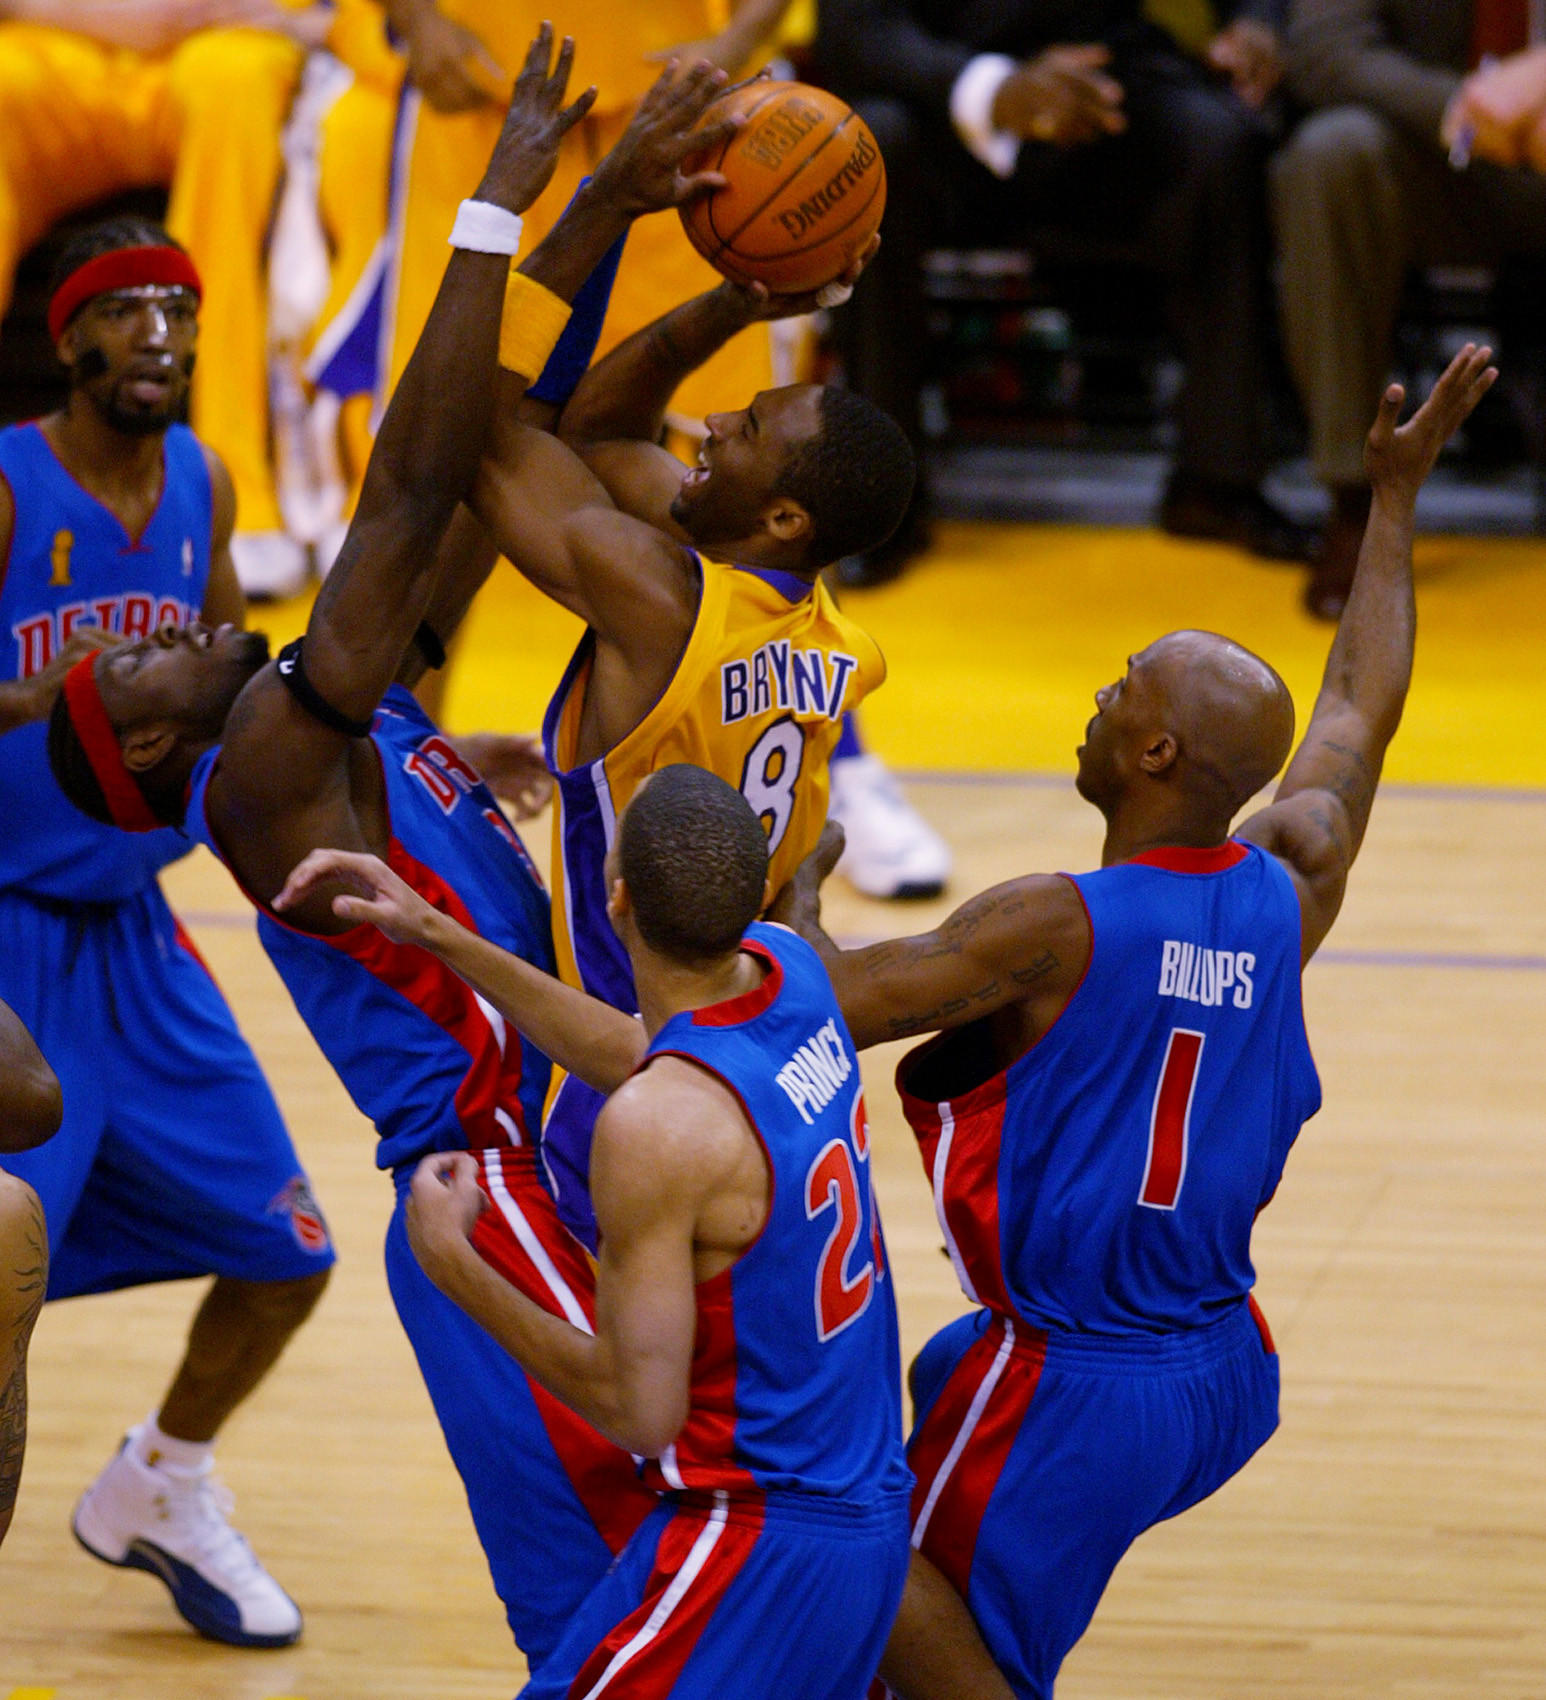 How Did Kobe Bryant Do In The NBA Finals? Here's A Look At